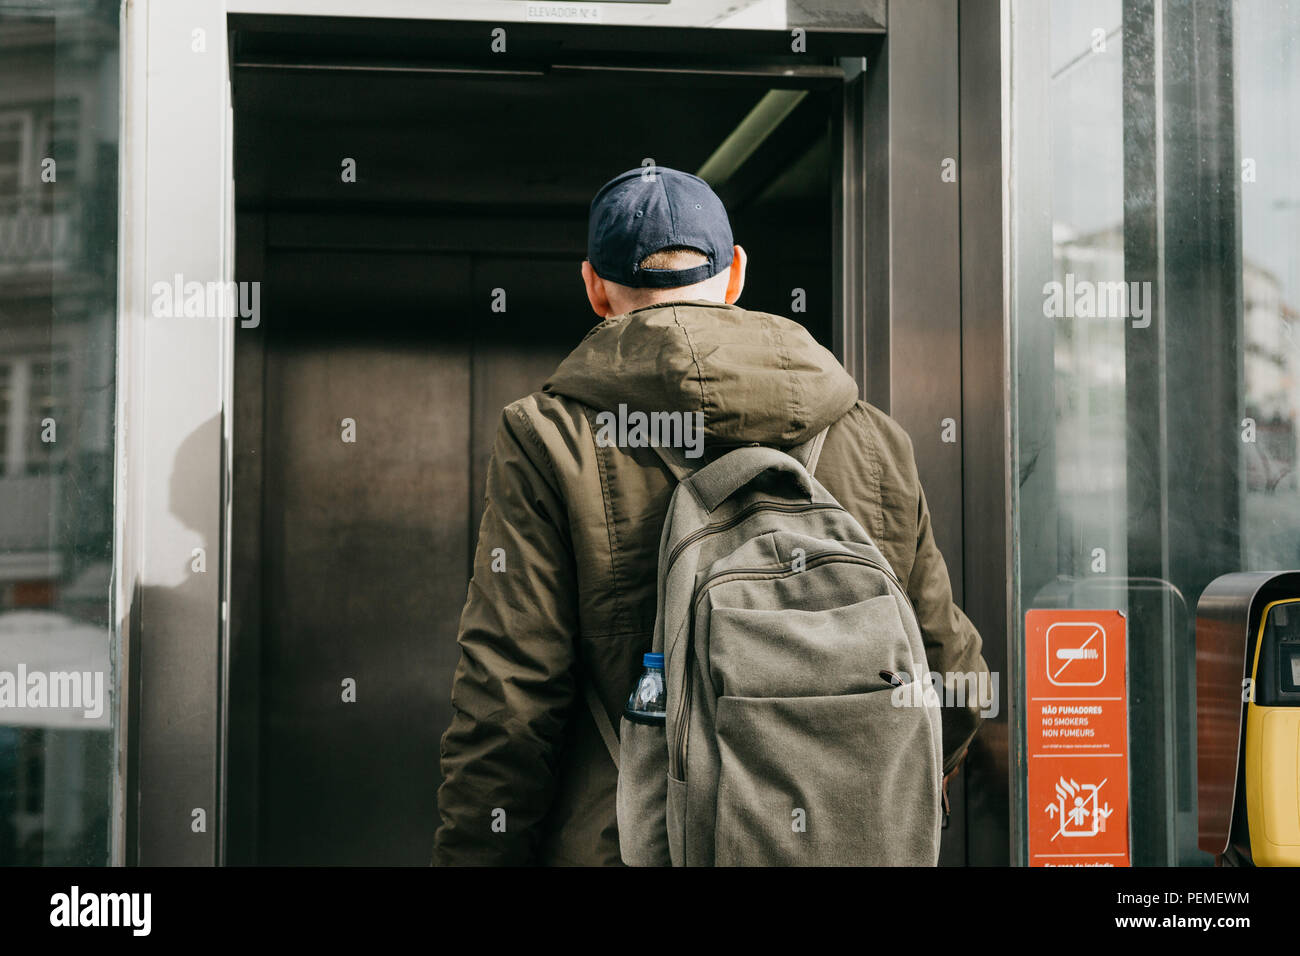 A tourist man with a backpack uses a street elevator in Porto in Portugal to go down to the metro. - Stock Image